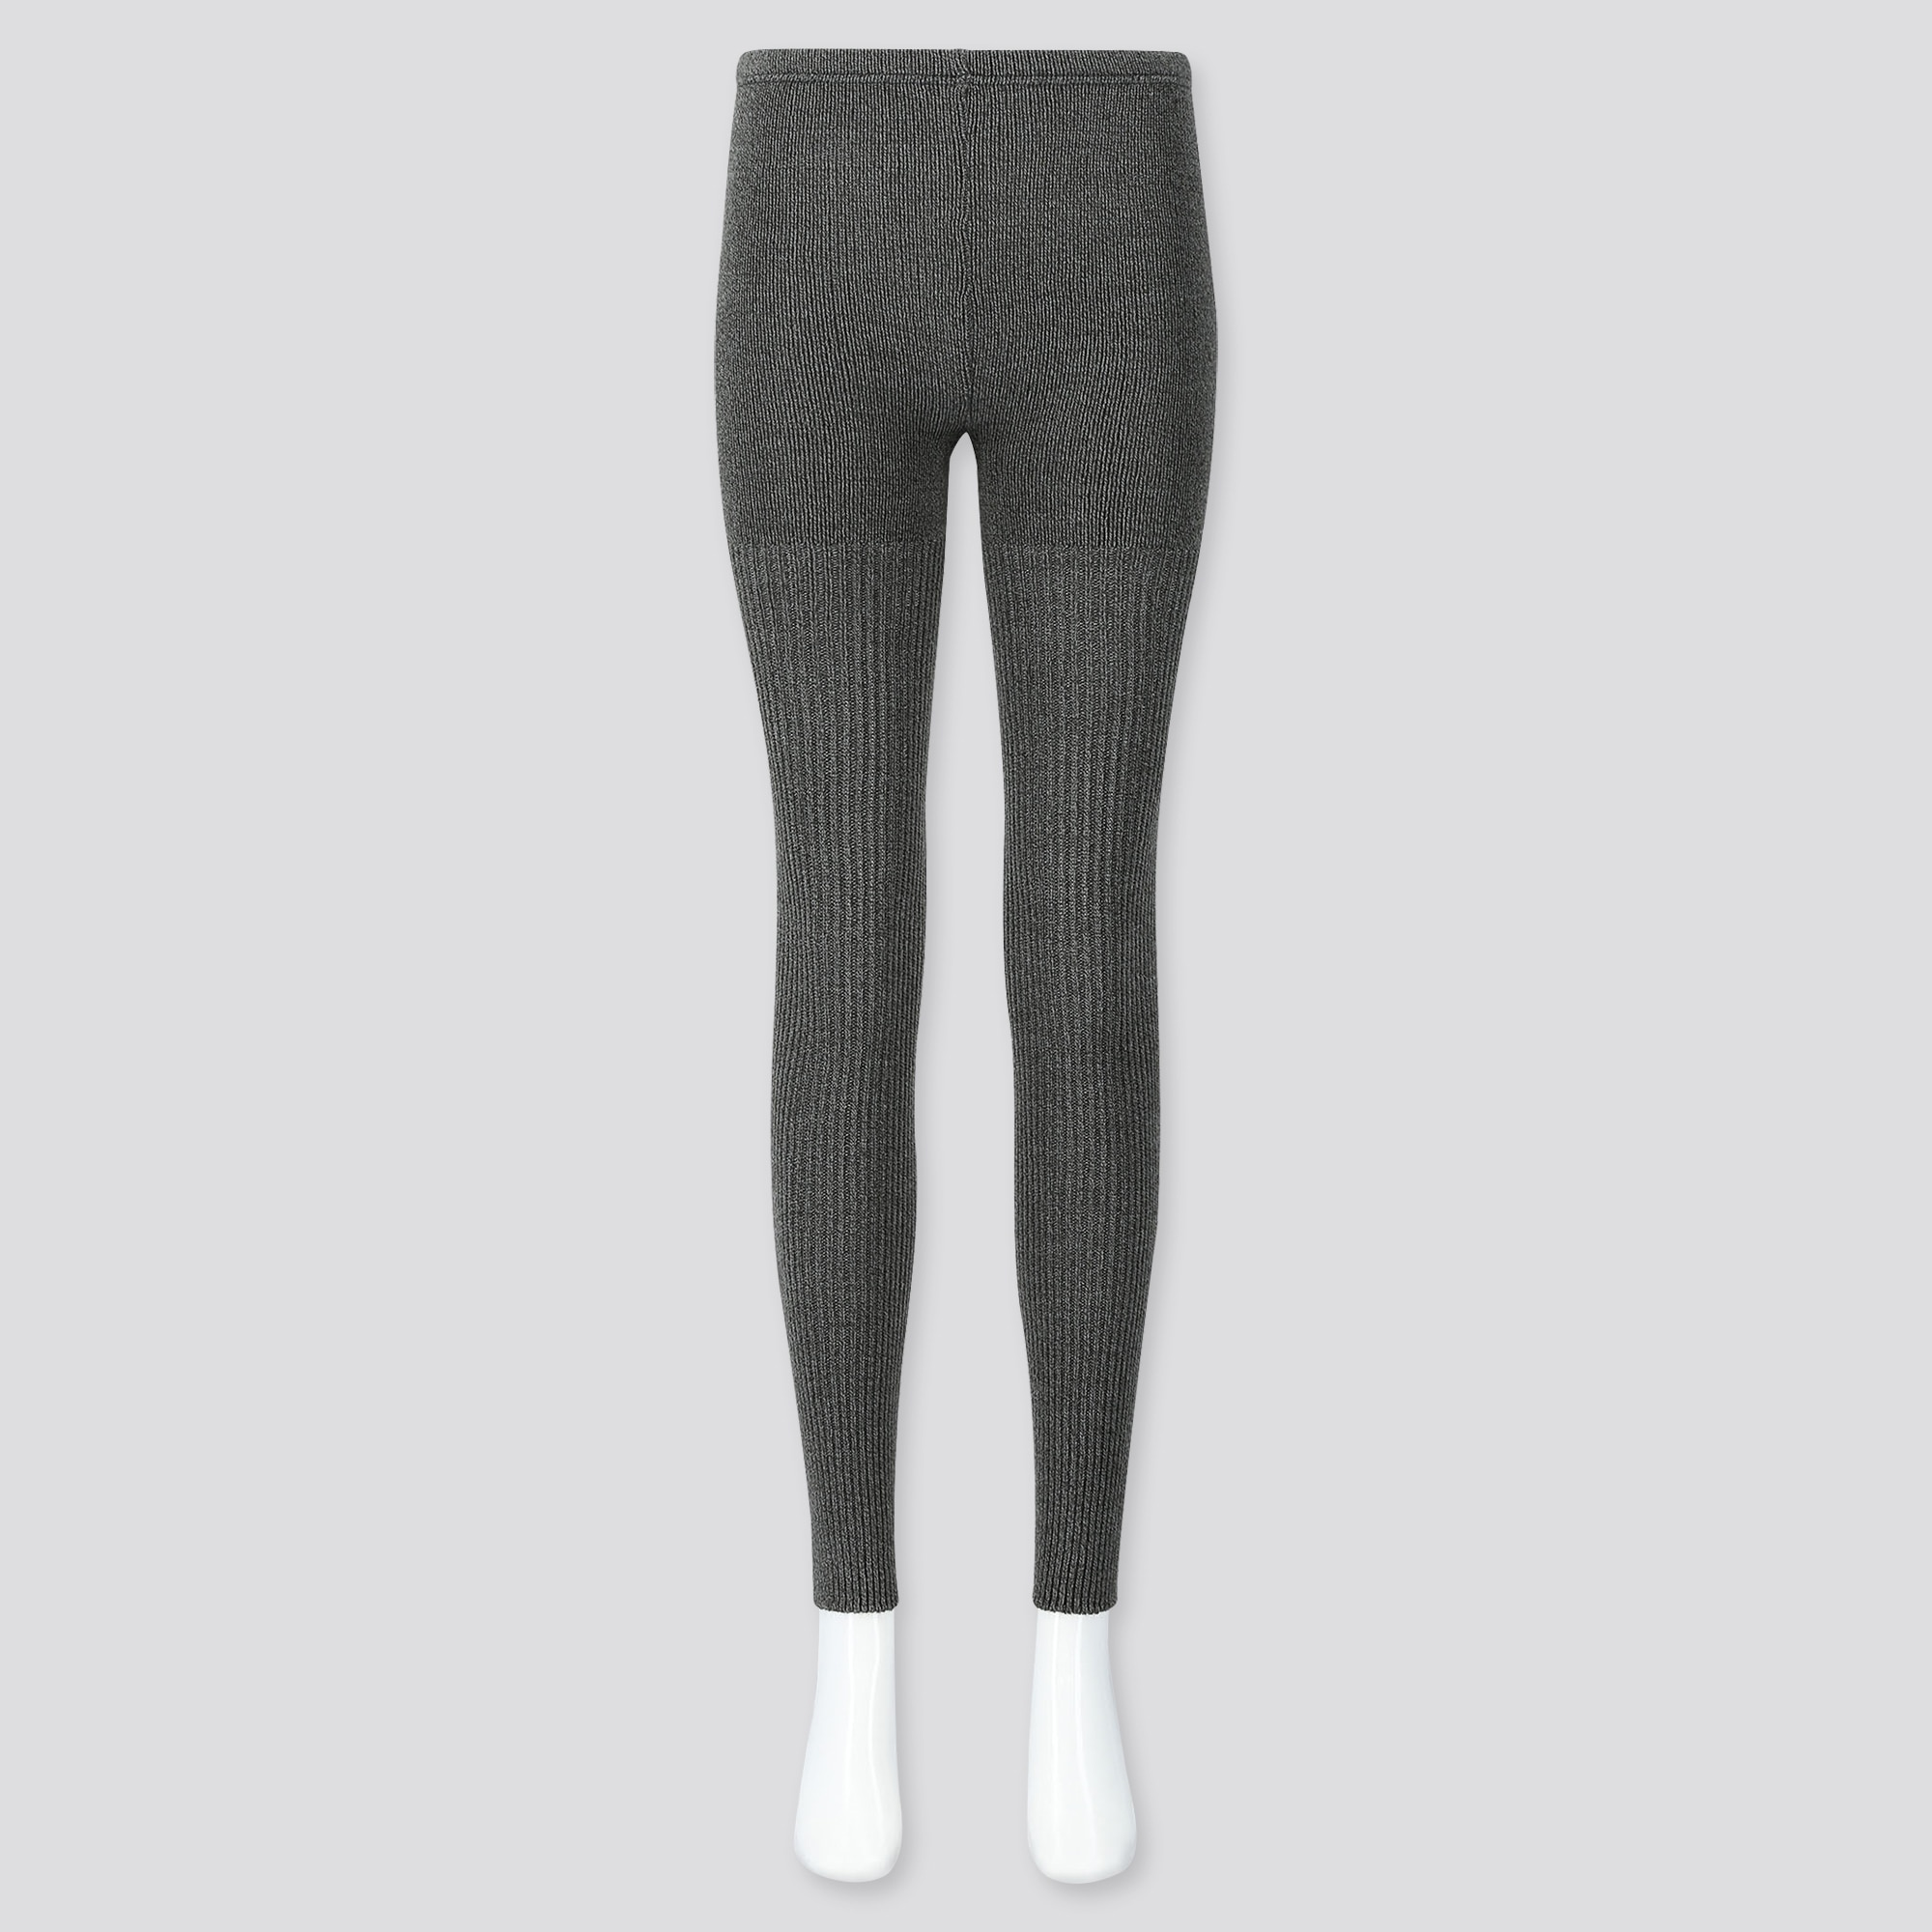 shop for genuine wide selection of colours and designs marketable WOMEN HEATTECH RIBBED KNIT LEGGINGS